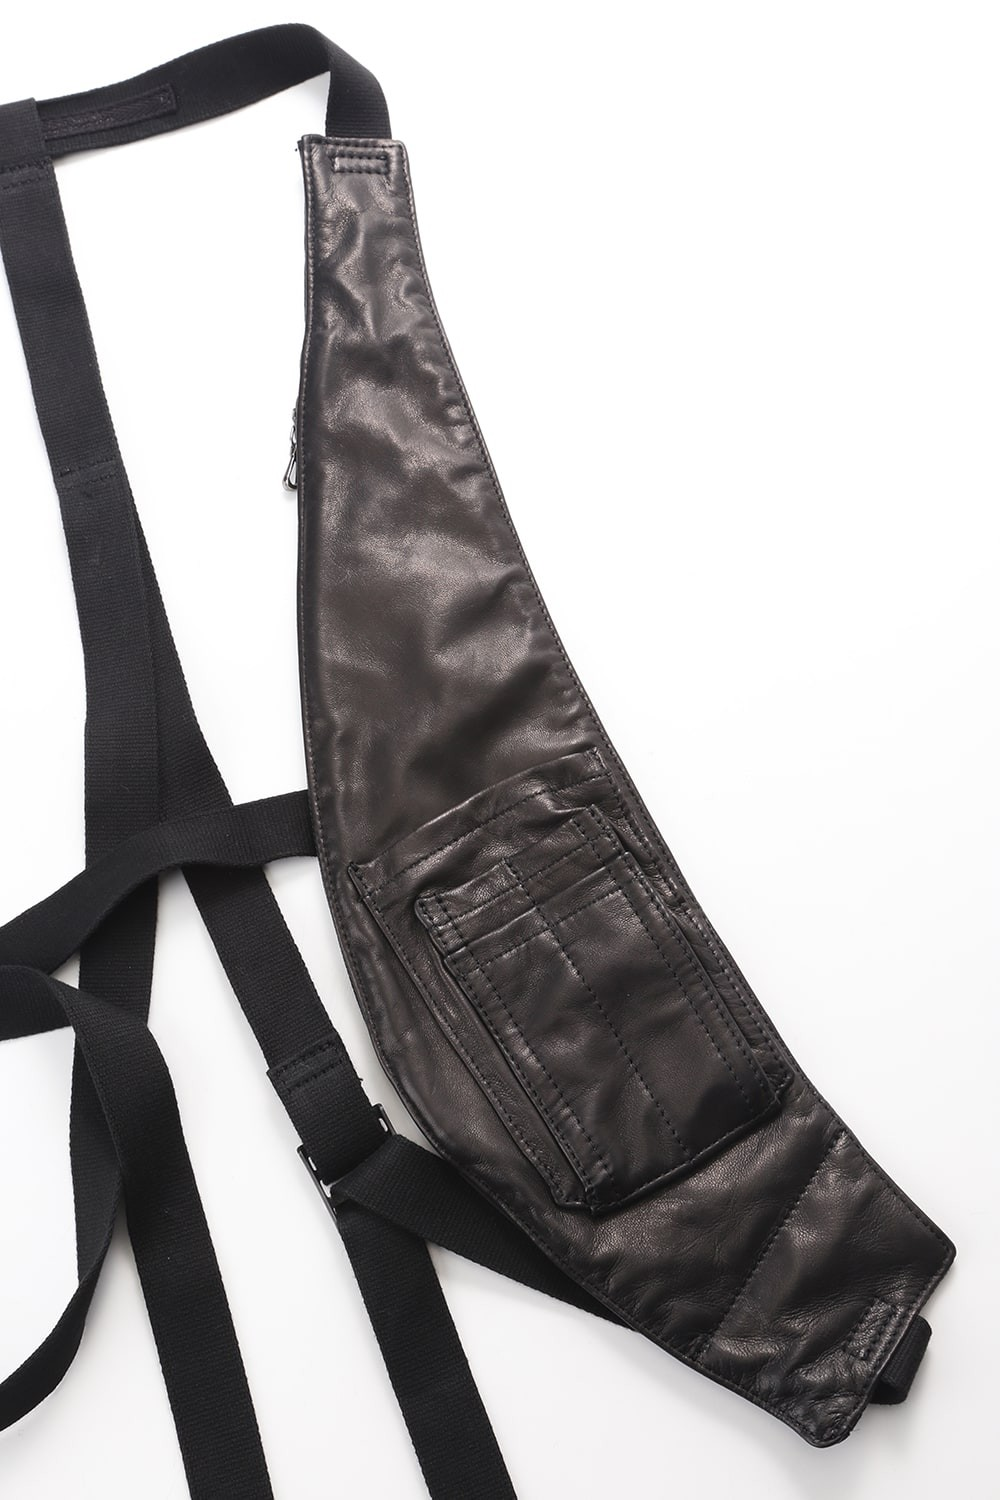 LEATHER HOLSTER BODY BAG